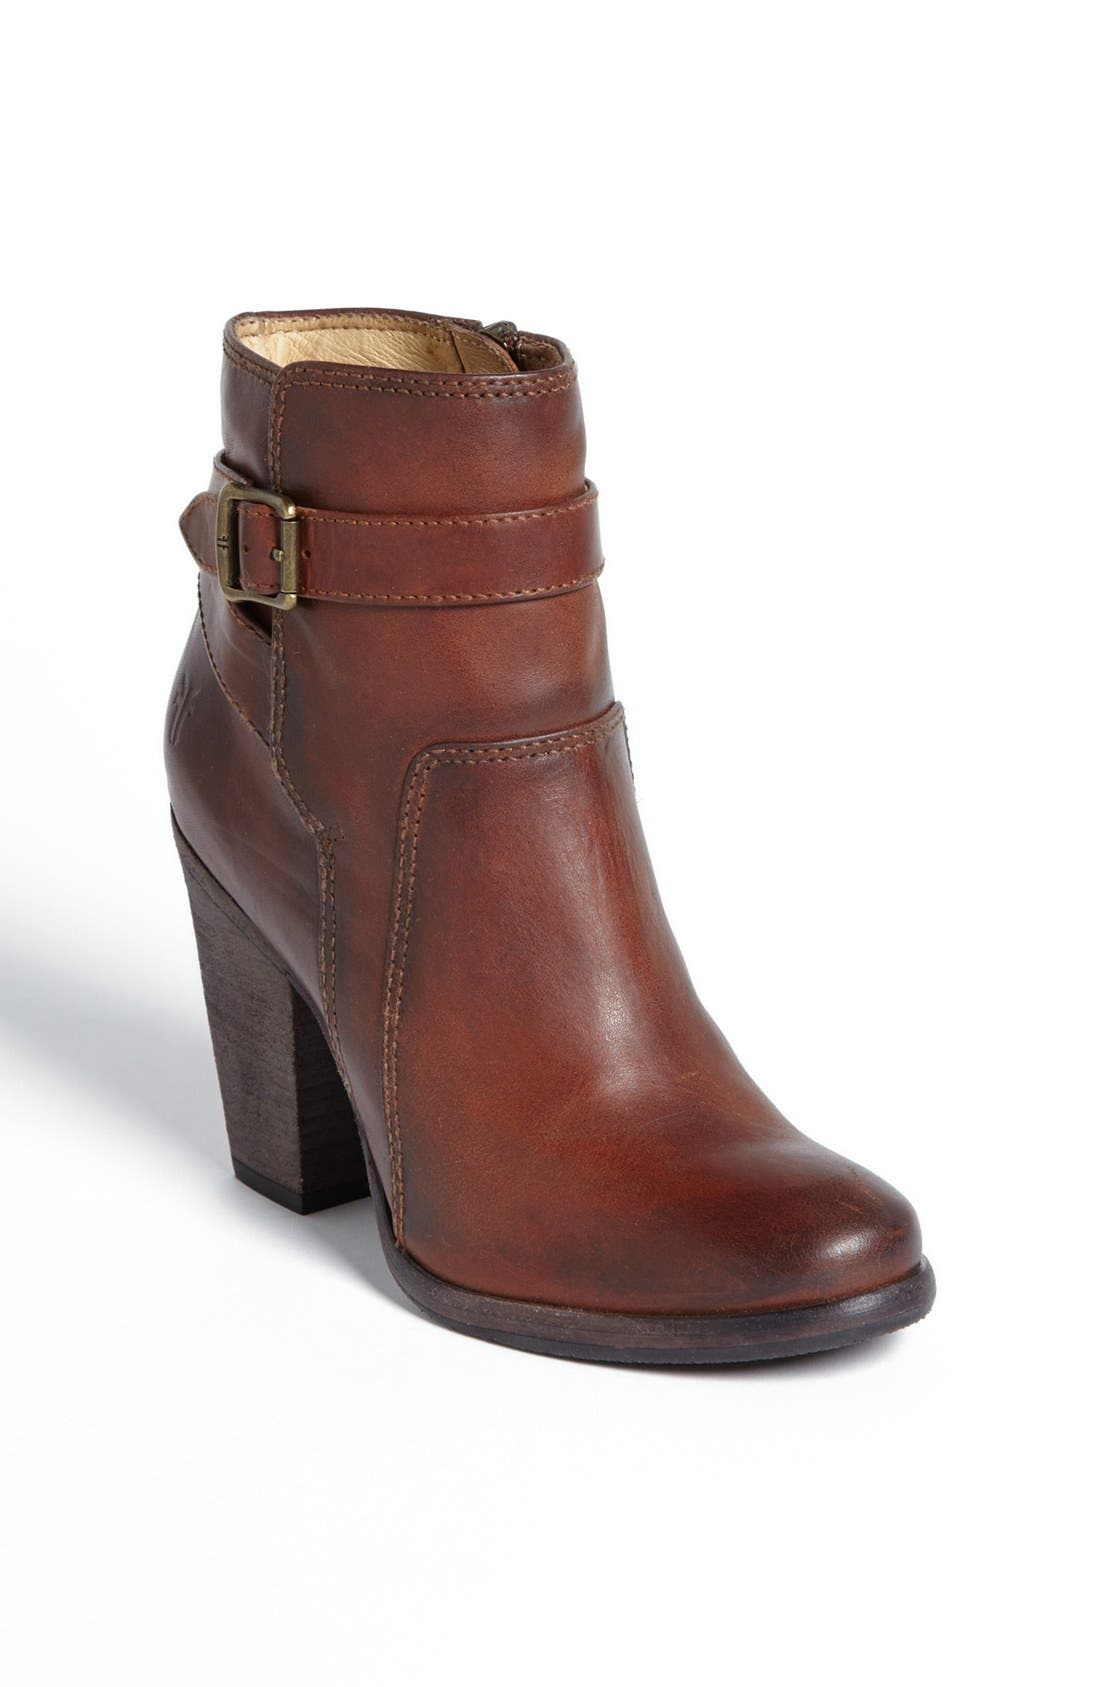 Main Image - Frye 'Patty' Leather Riding Bootie (Women)